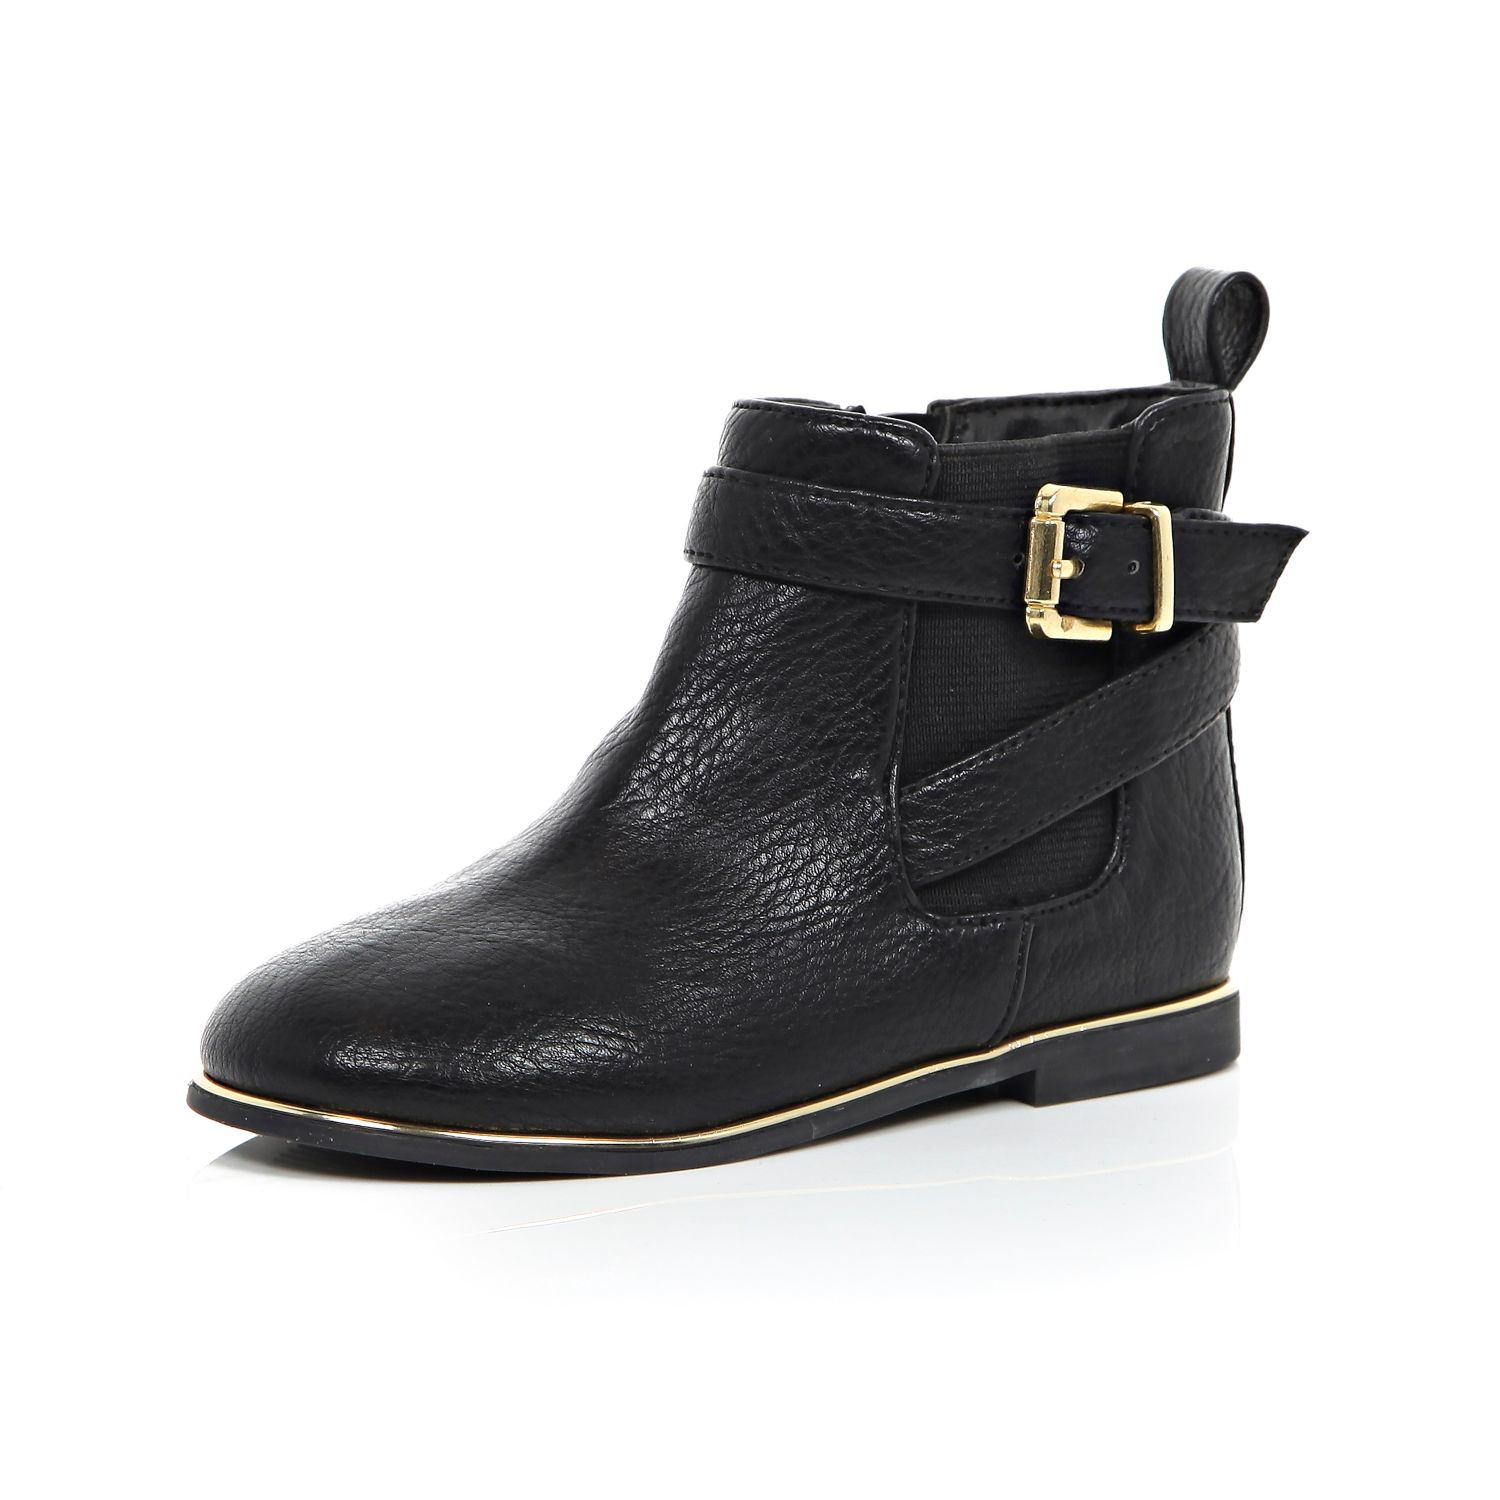 Find great deals on eBay for girls black ankle boots. Shop with confidence.